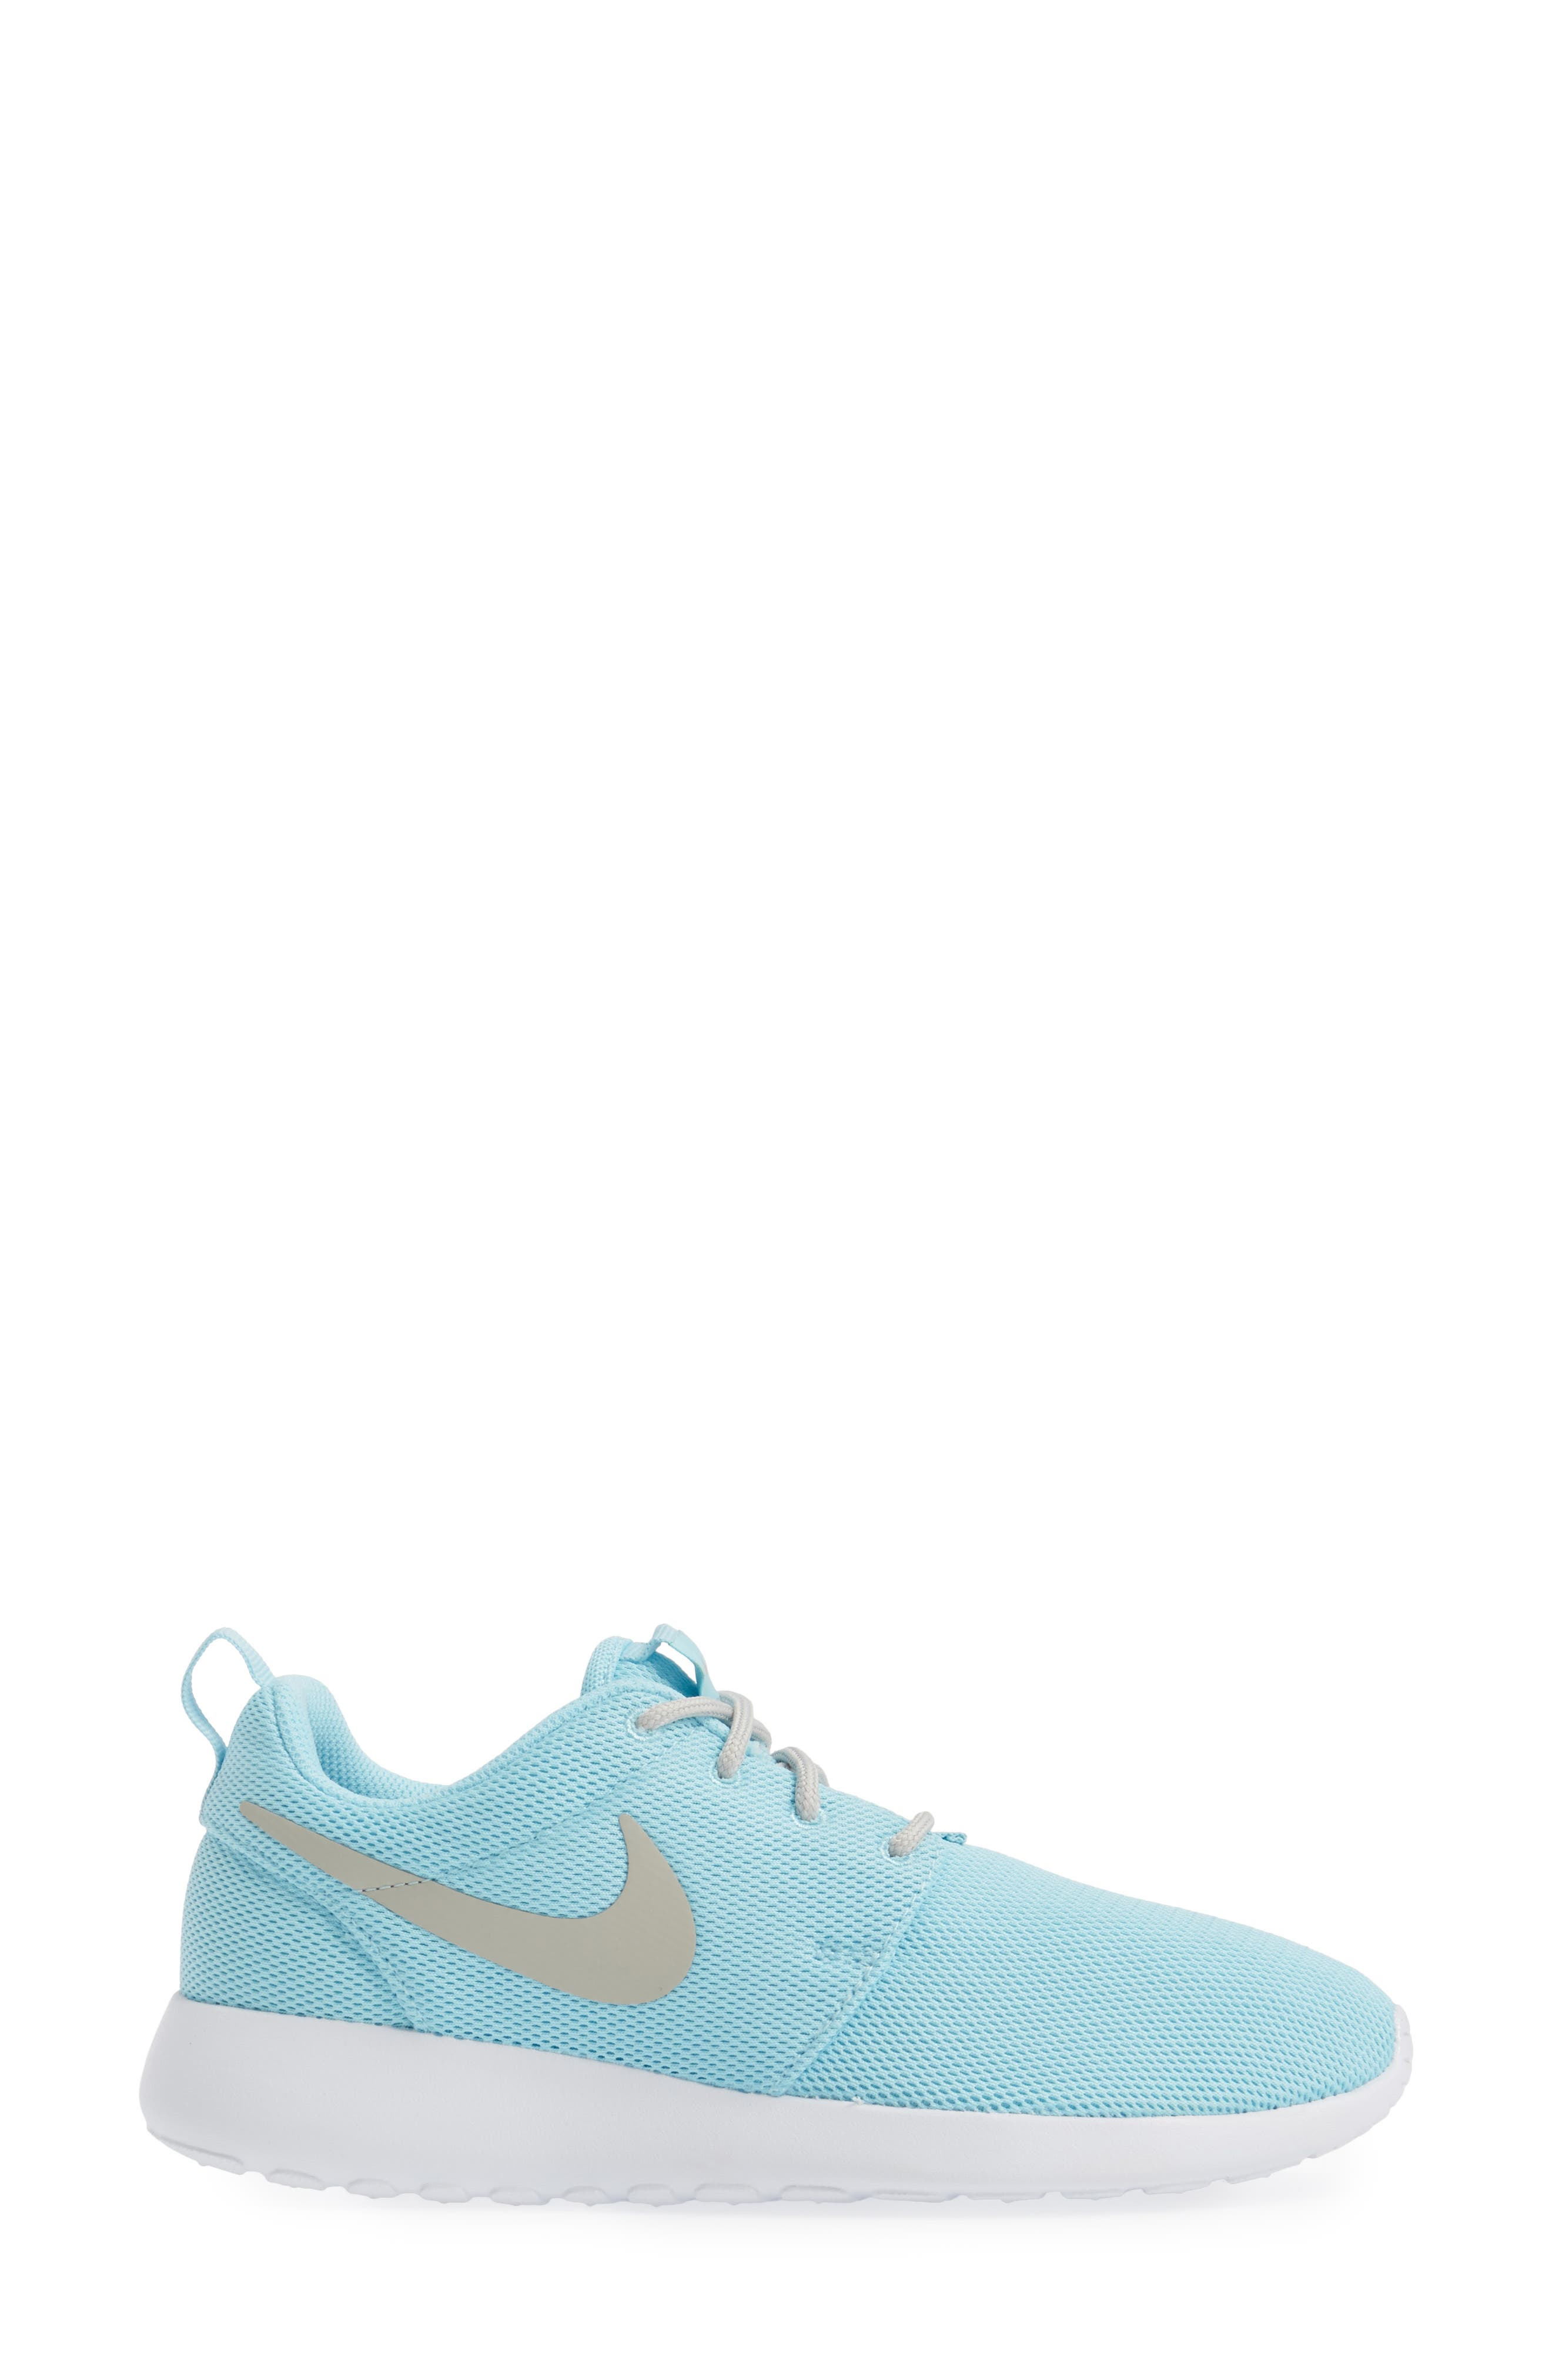 Alternate Image 3  - Nike 'Roshe Run' Sneaker (Women)